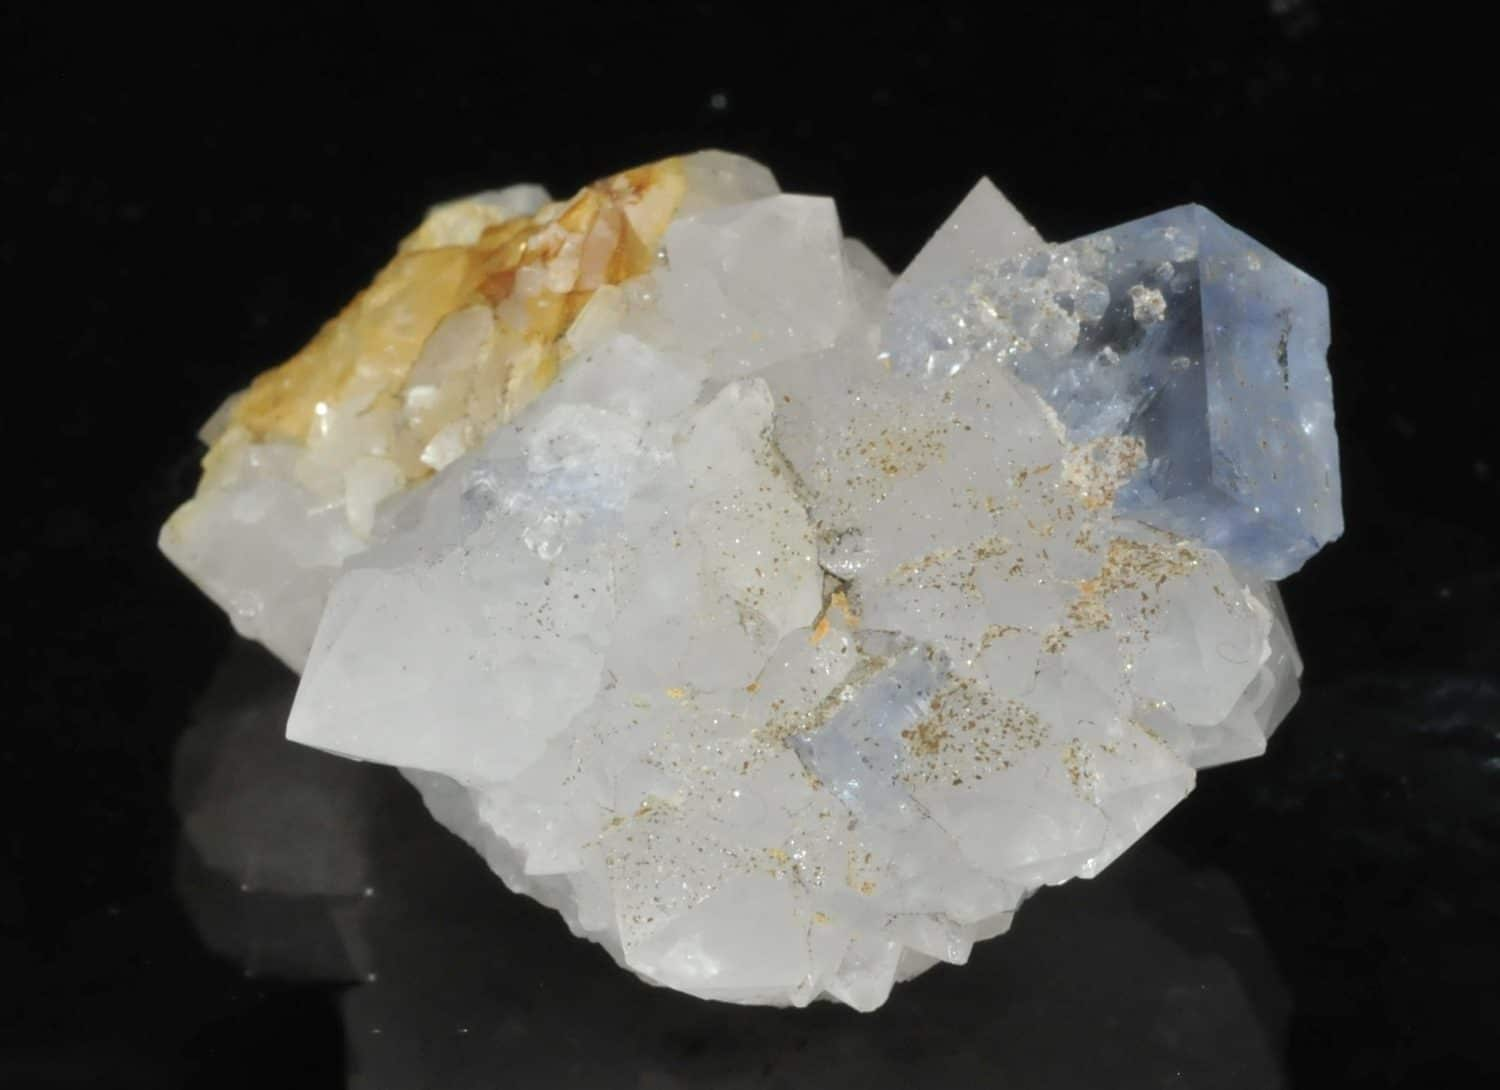 Blue fluorite and quartz from the mine of the Burc (at the Burg, Tarn, France)